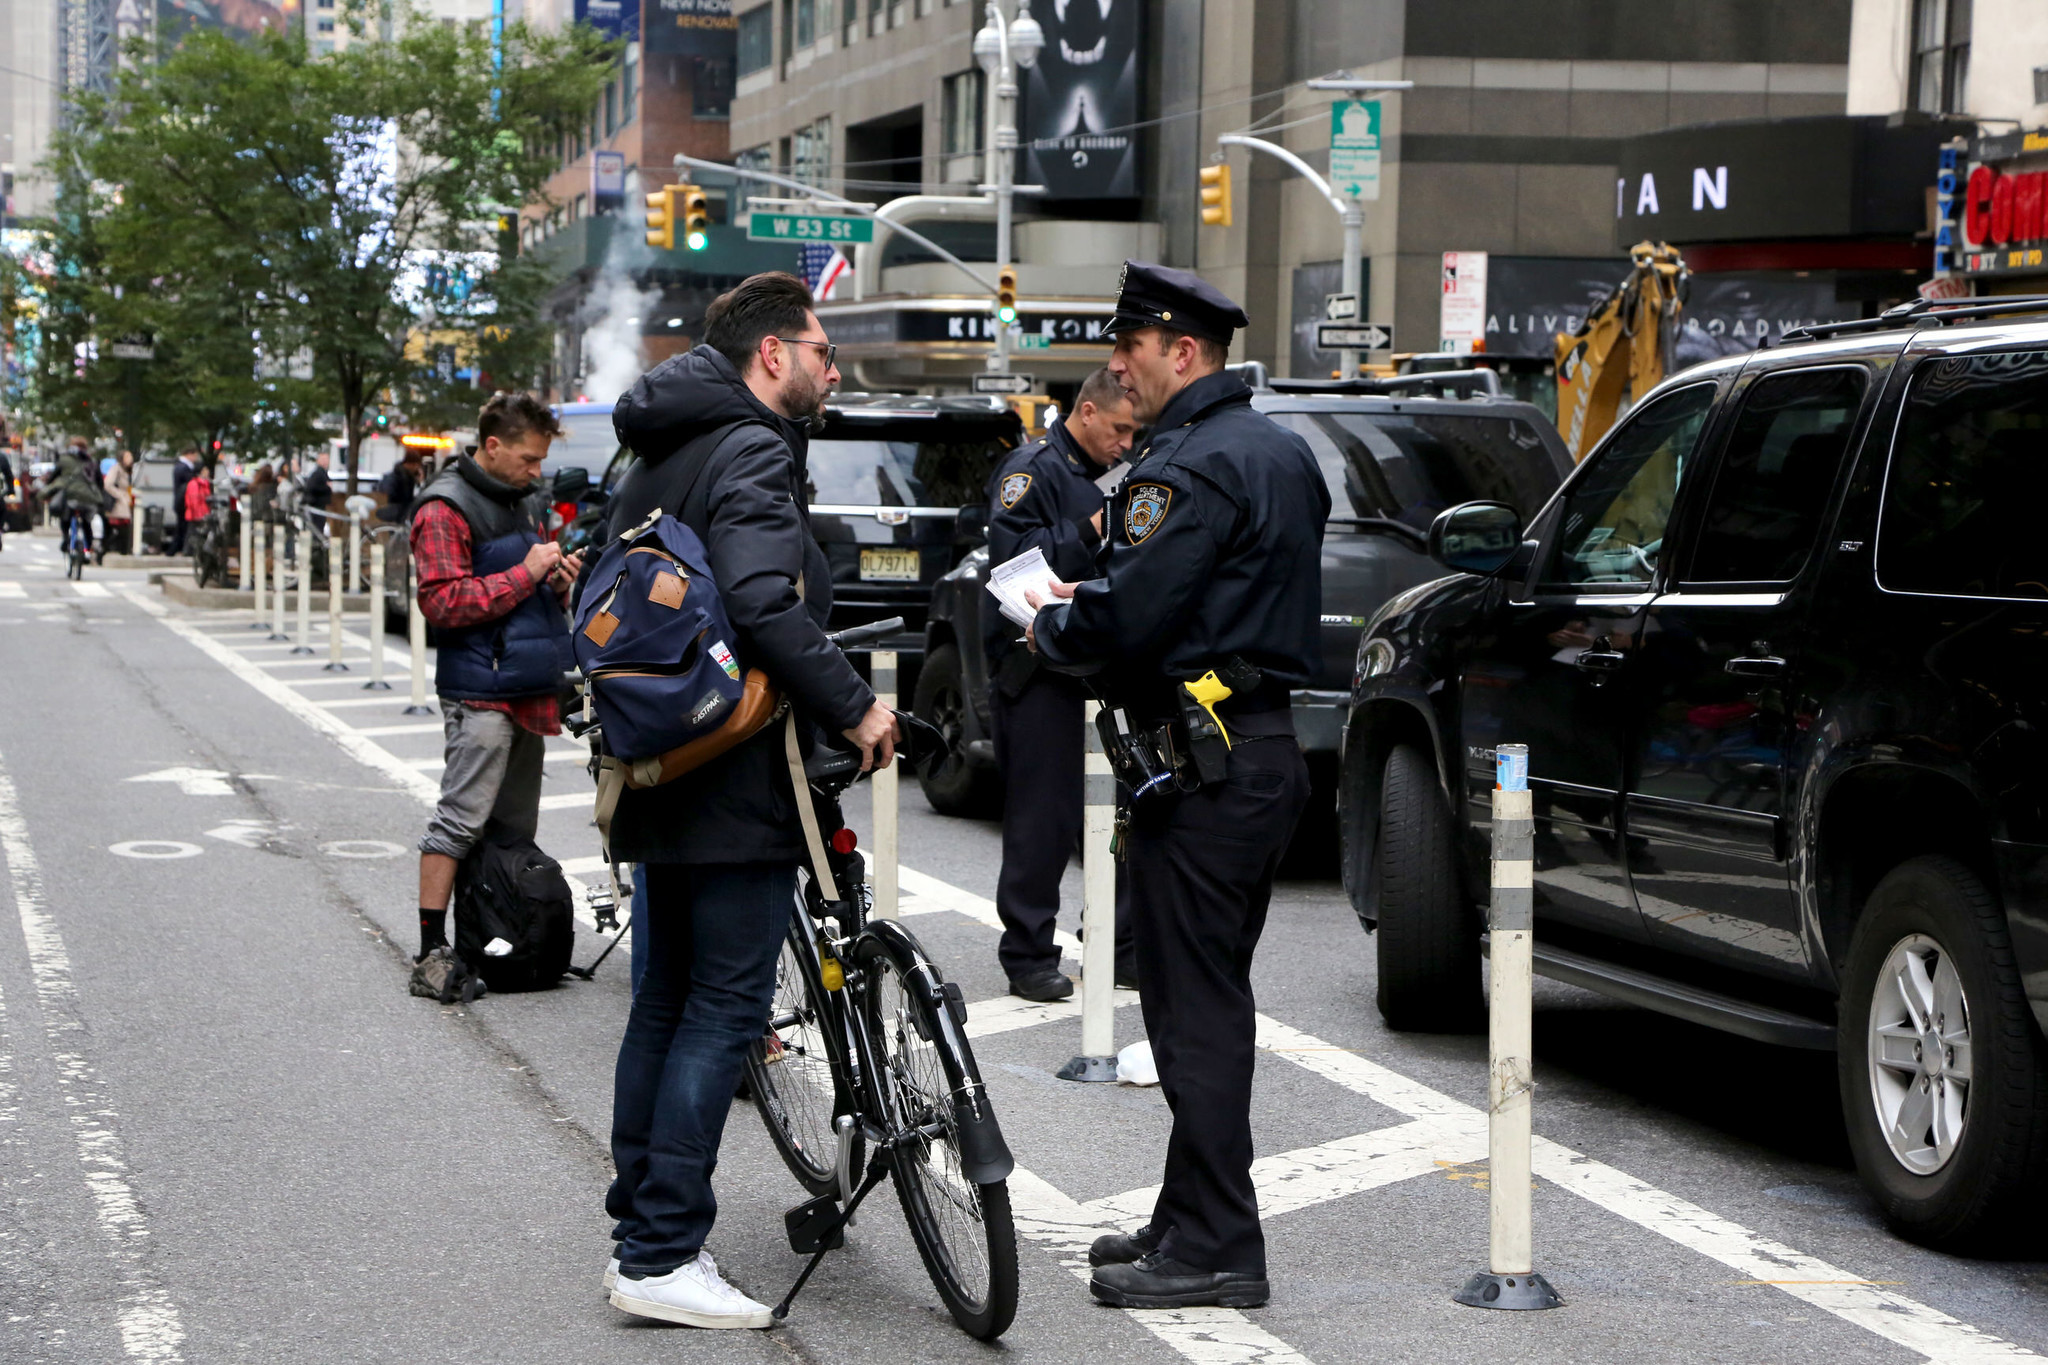 NYPD issued more tickets to bike riders than truck drivers last year